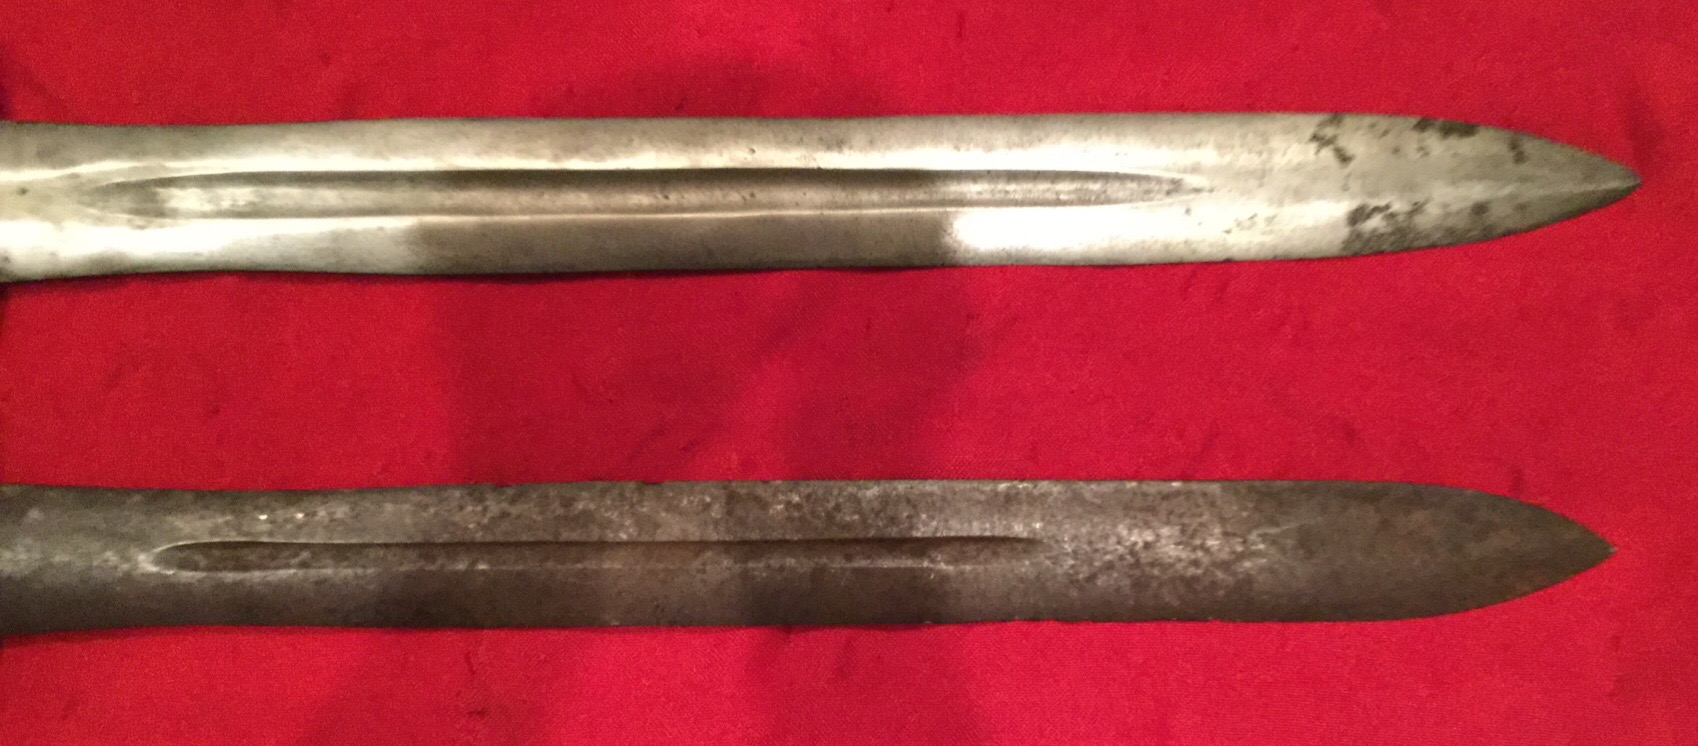 Confederate Short Sword Blade, Top is Authentic, Bottom is Fake